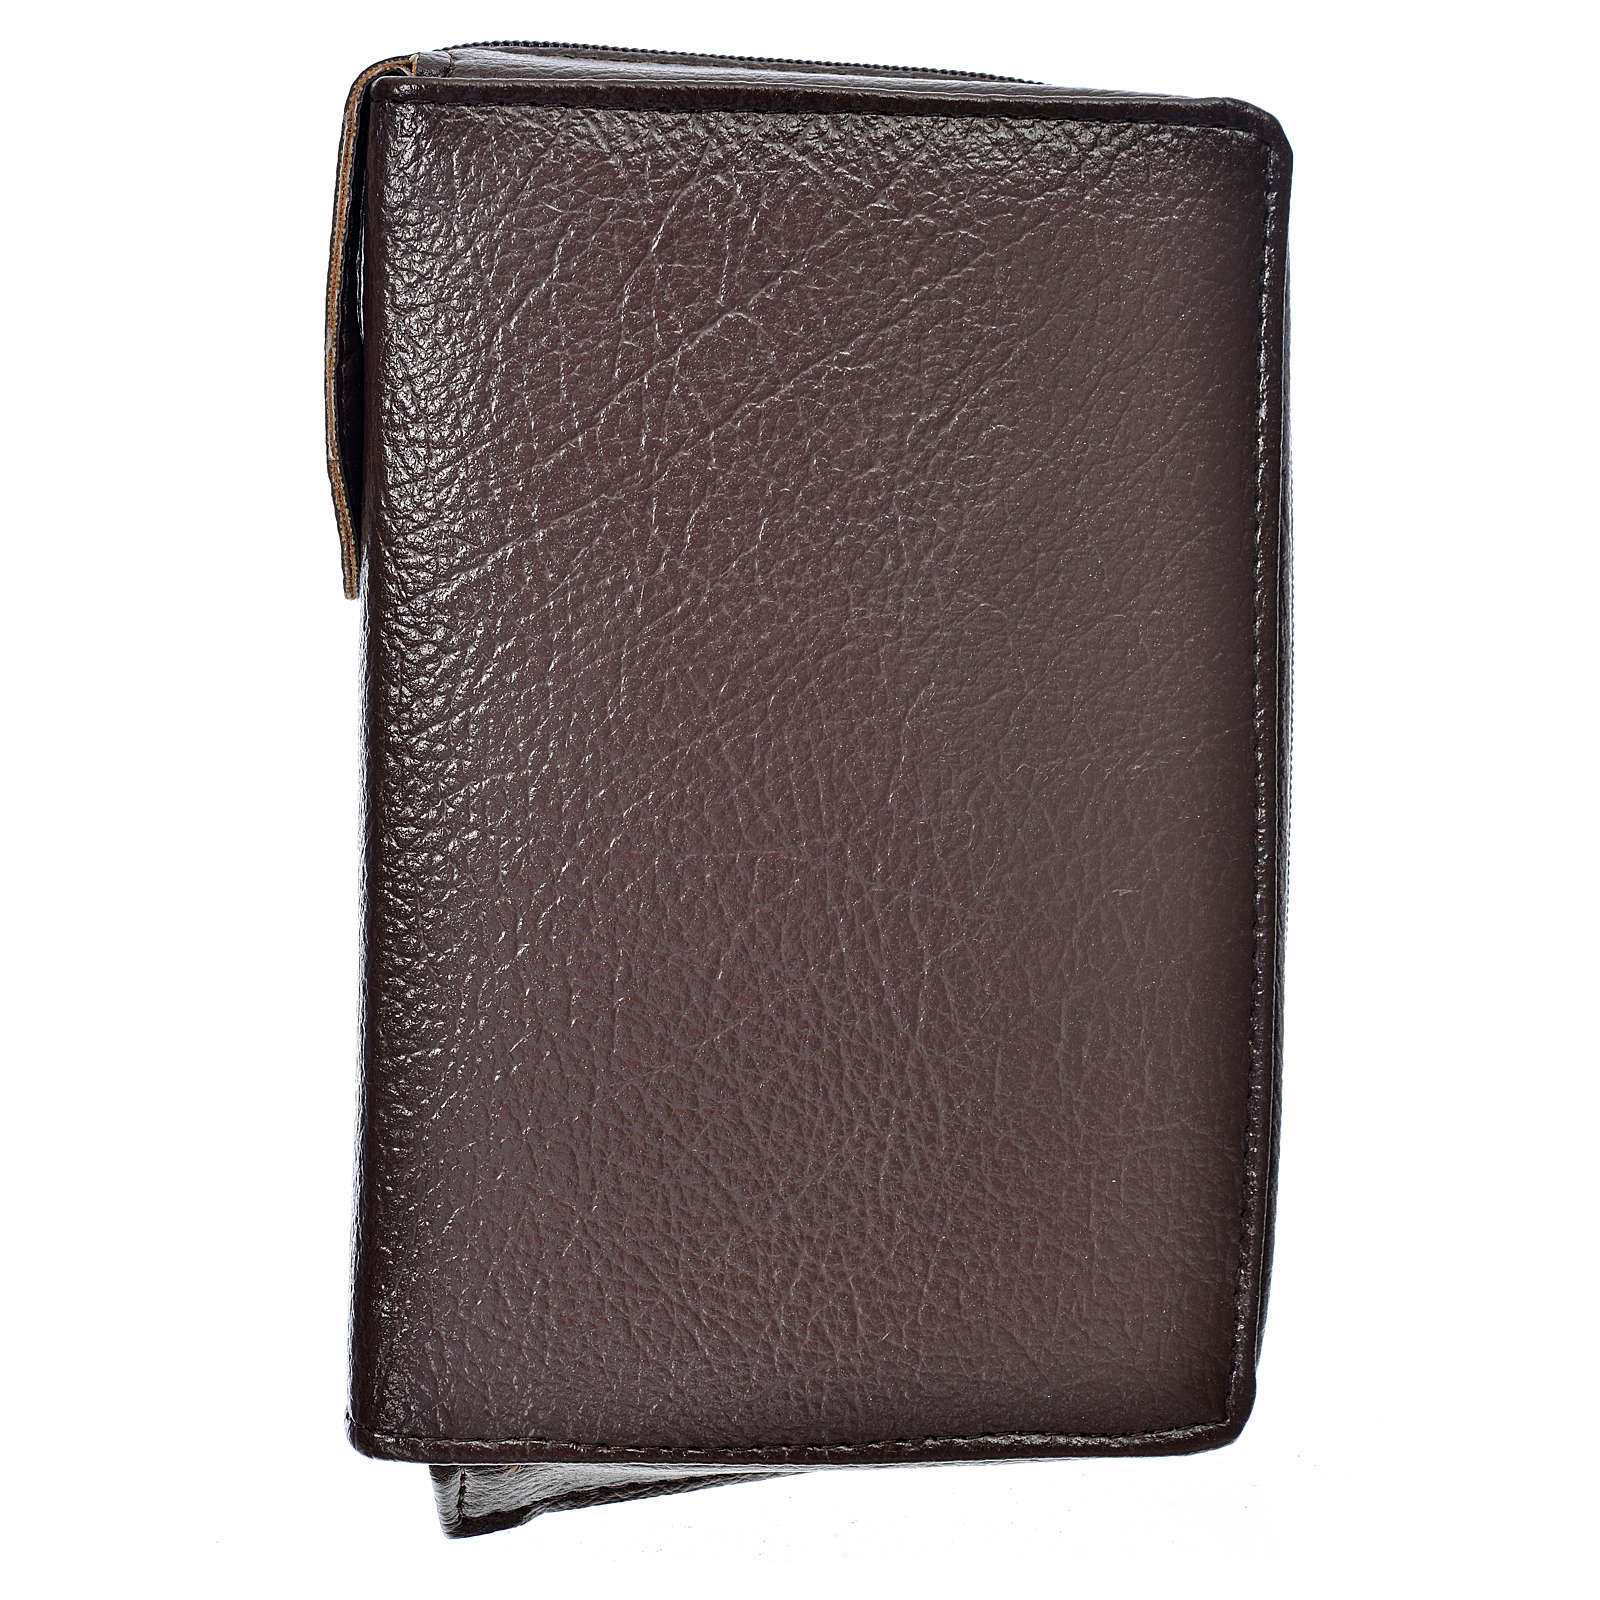 Cover Liturgy of the Hours in dark brown bonded leather 4